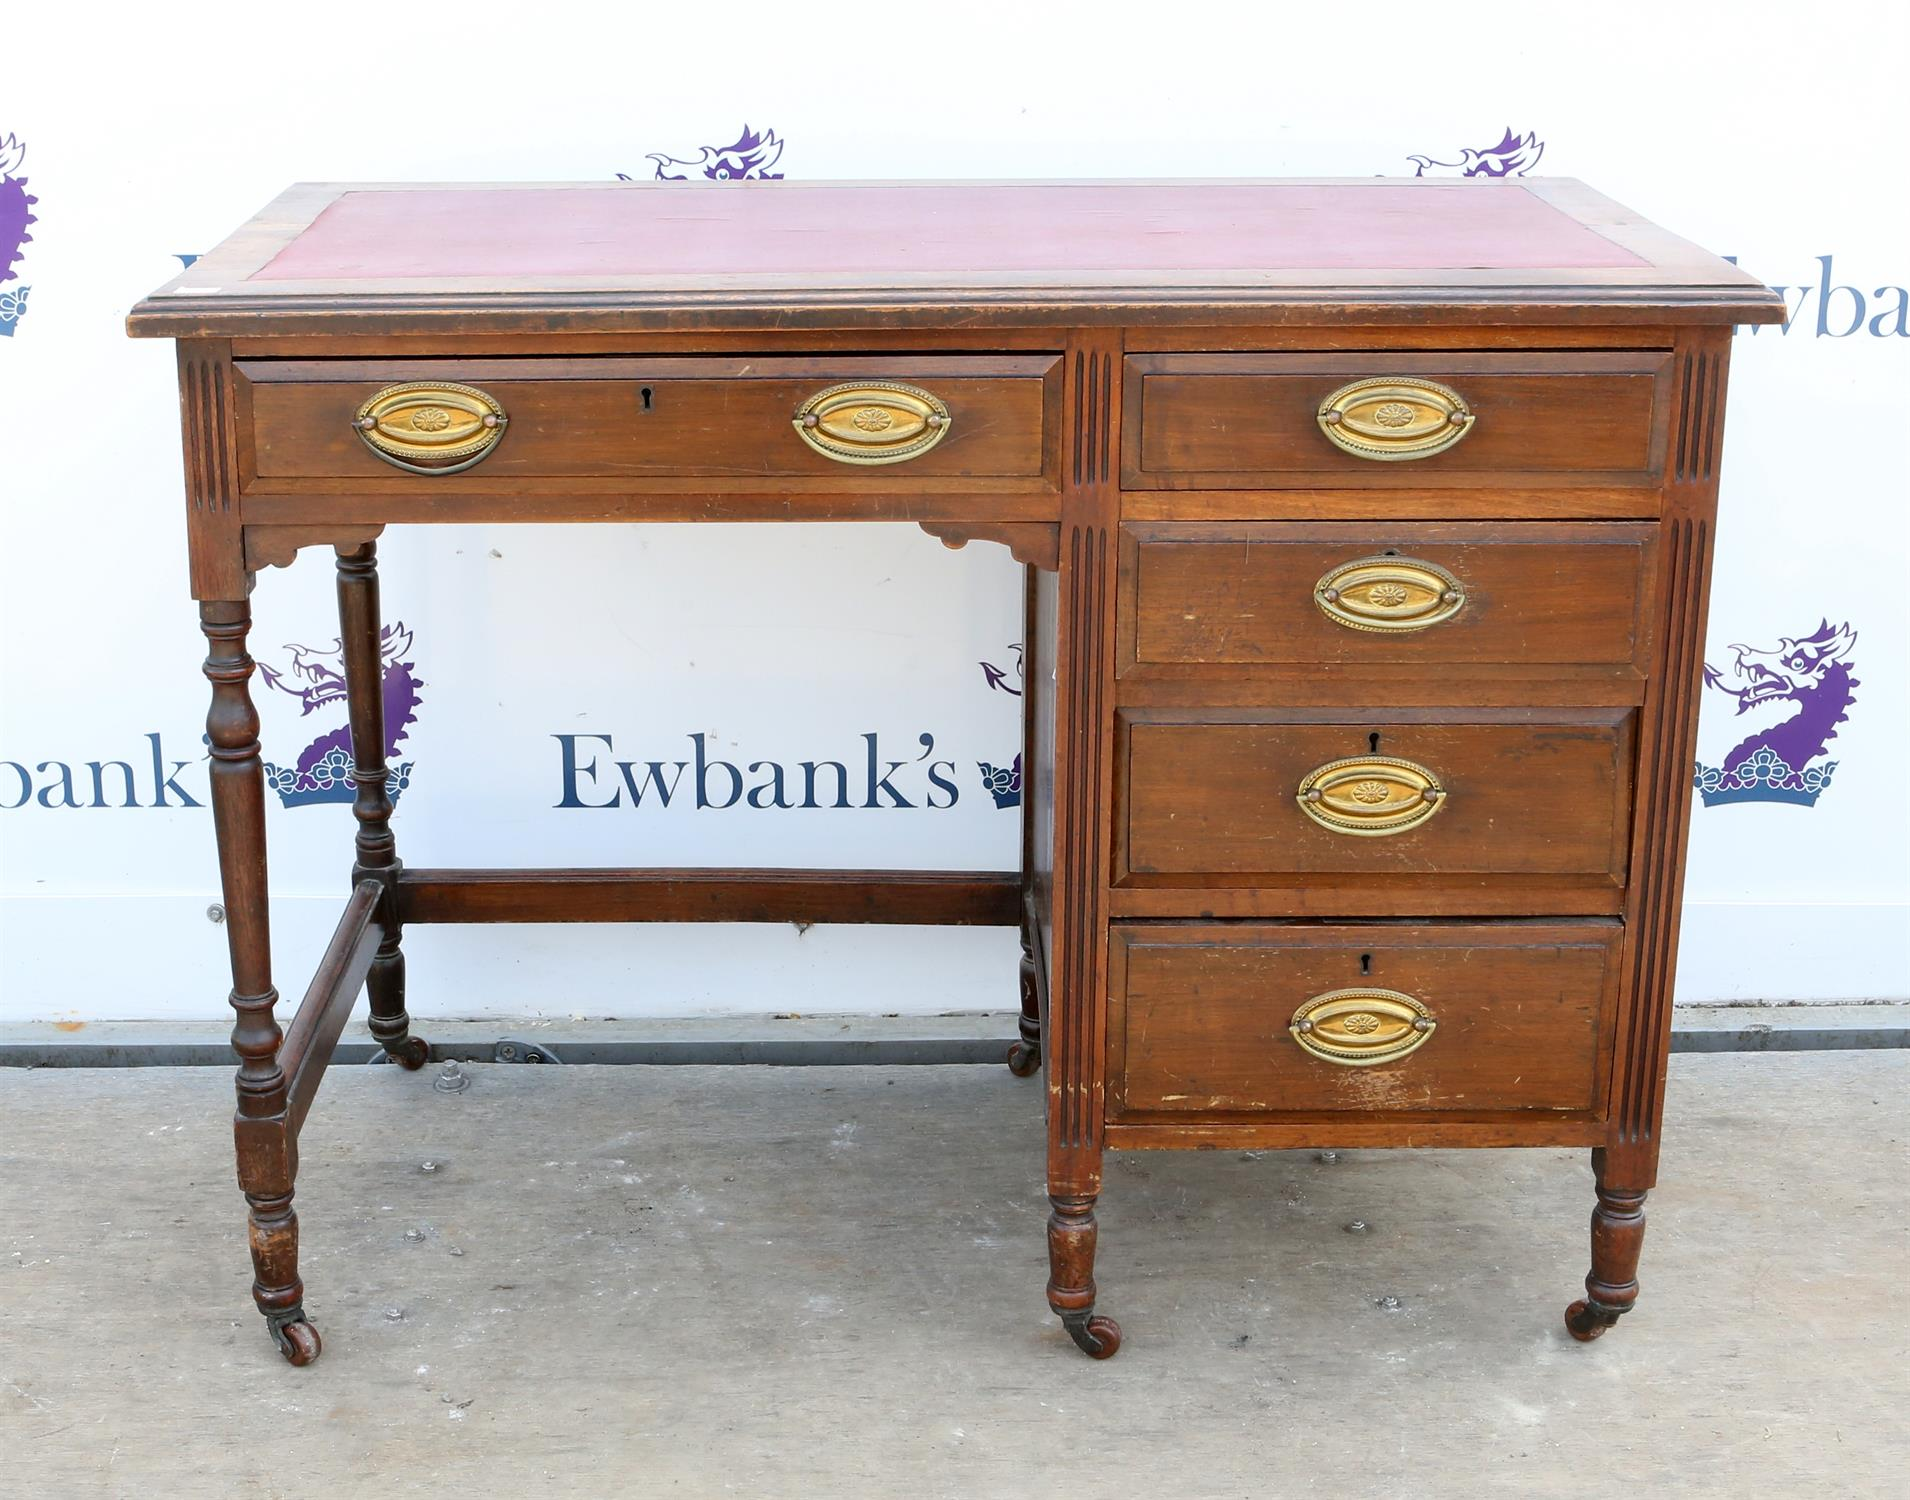 Early 20th century Maple & Co walnut desk, with five drawers on turned supports, H74 x W99 x D51cm